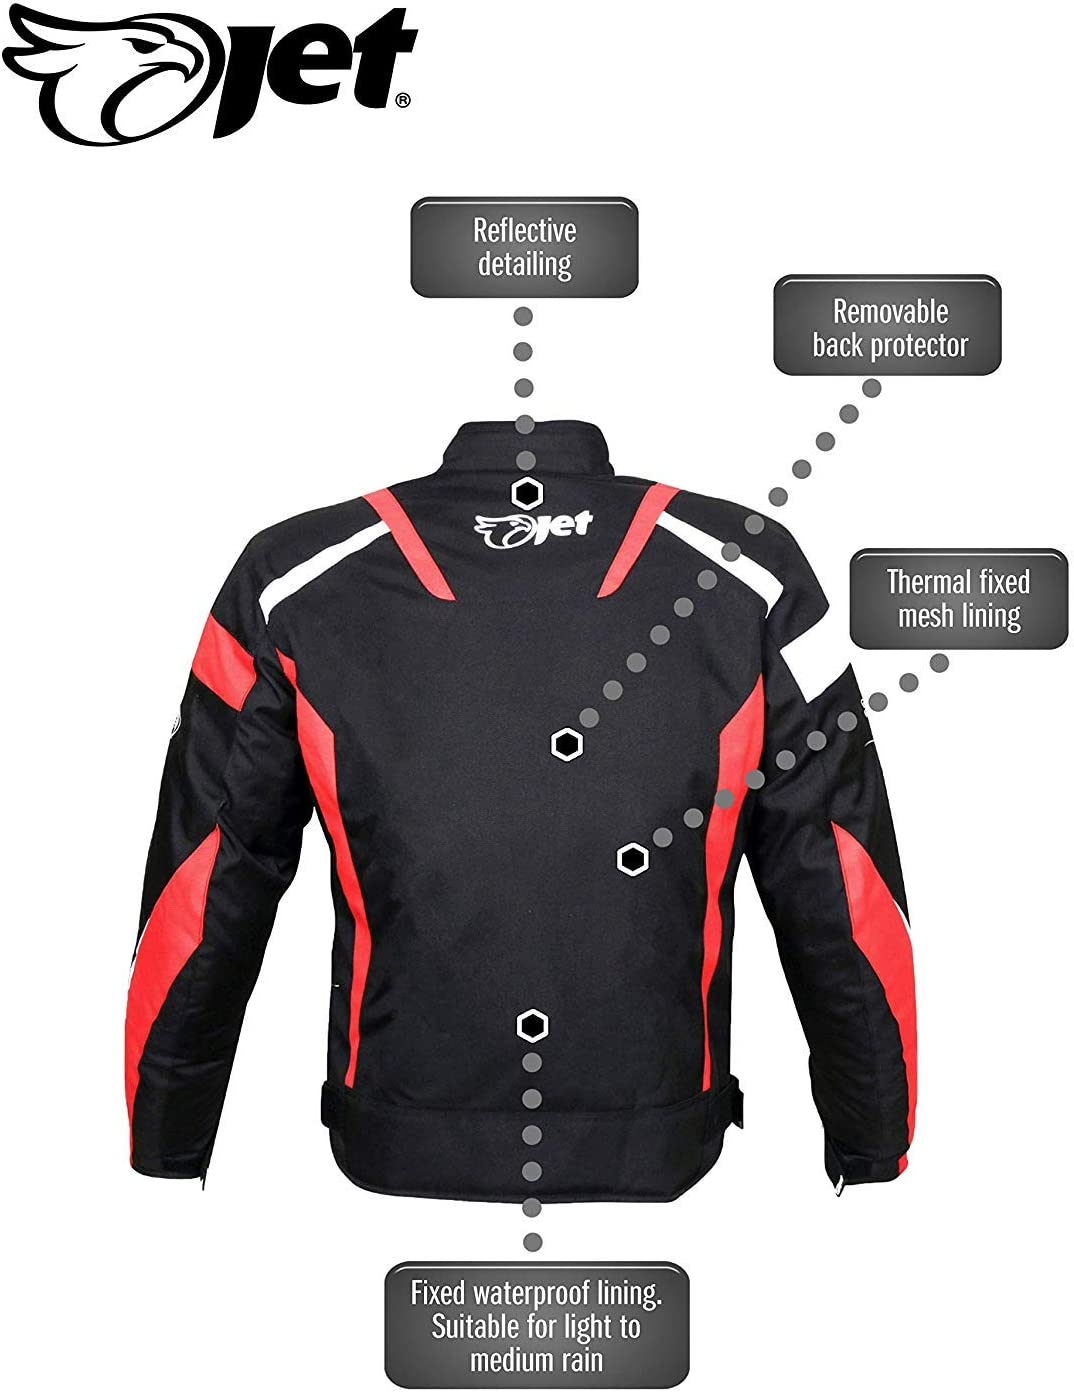 34-36 Black, XS JET Motorcycle Motorbike Jacket Scooter Moped Commuter Urban Rider Protective Jacket Textile Armoured ECONOTECH